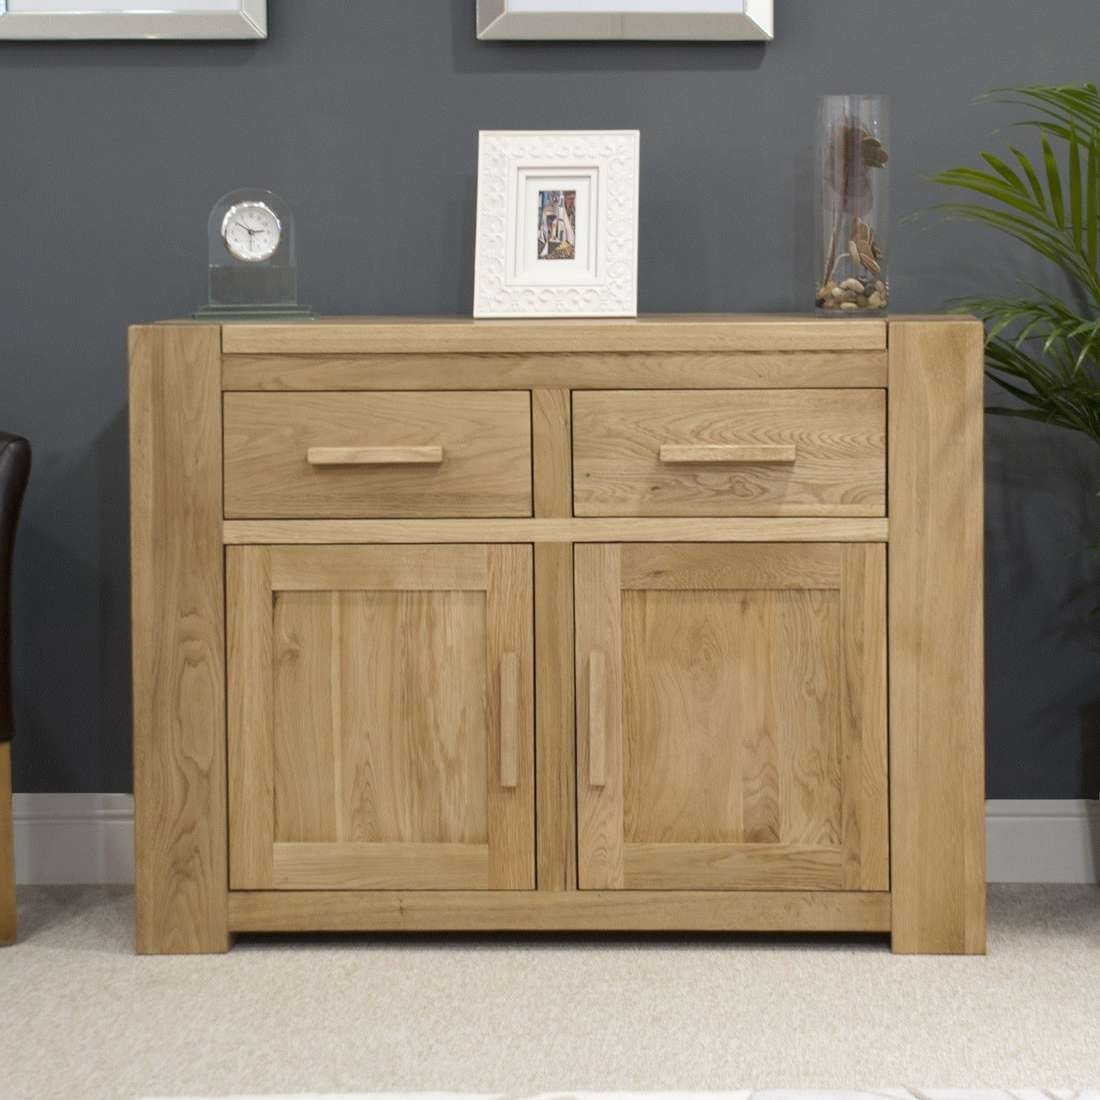 Trend Solid Oak Small 2 Door Sideboard | Oak Furniture Uk Throughout Solid Oak Sideboards (View 19 of 20)